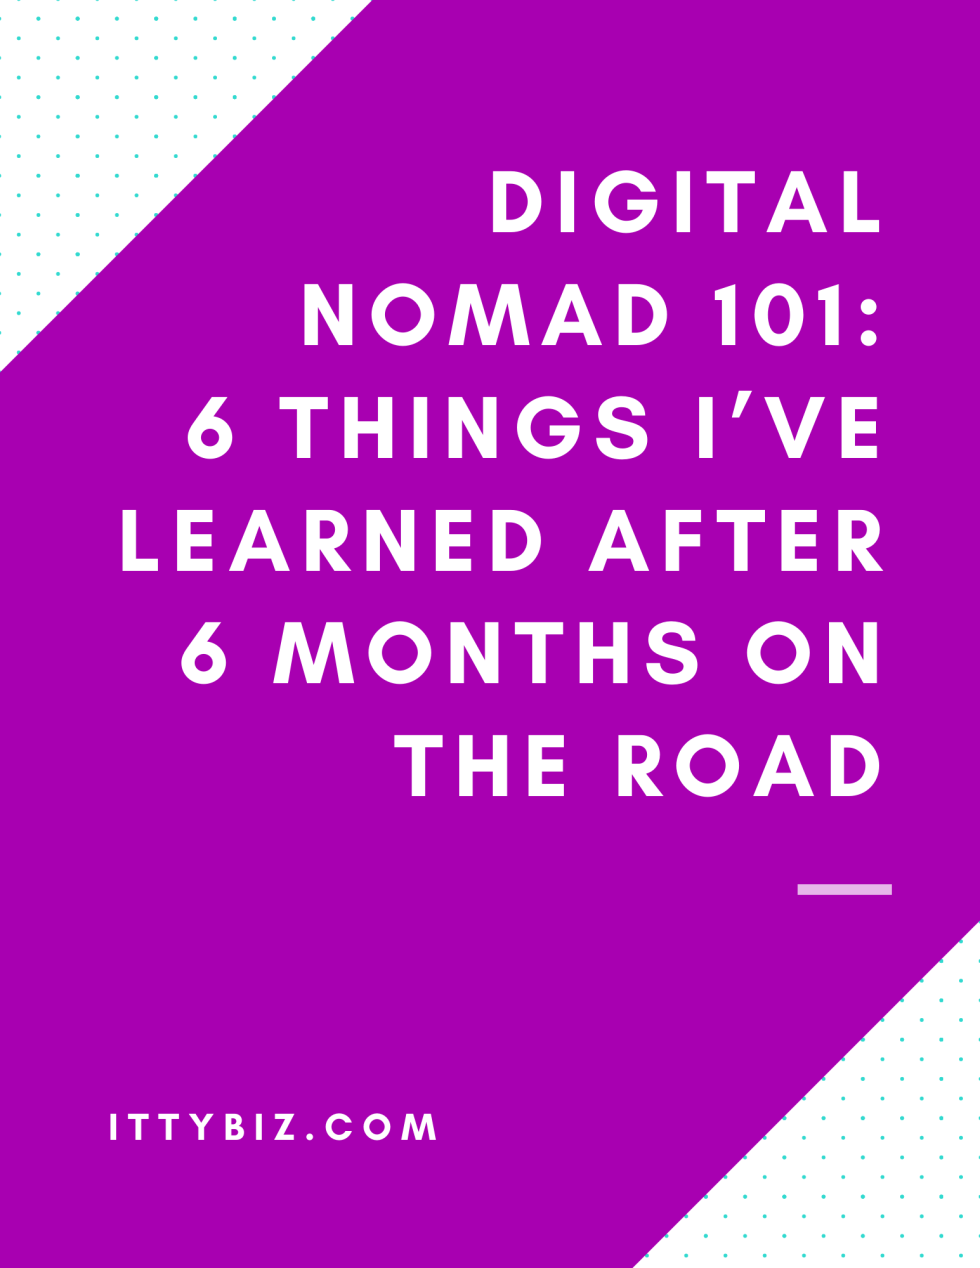 Digital Nomad 101: 6 Things I've Learned After 6 Months On The Road